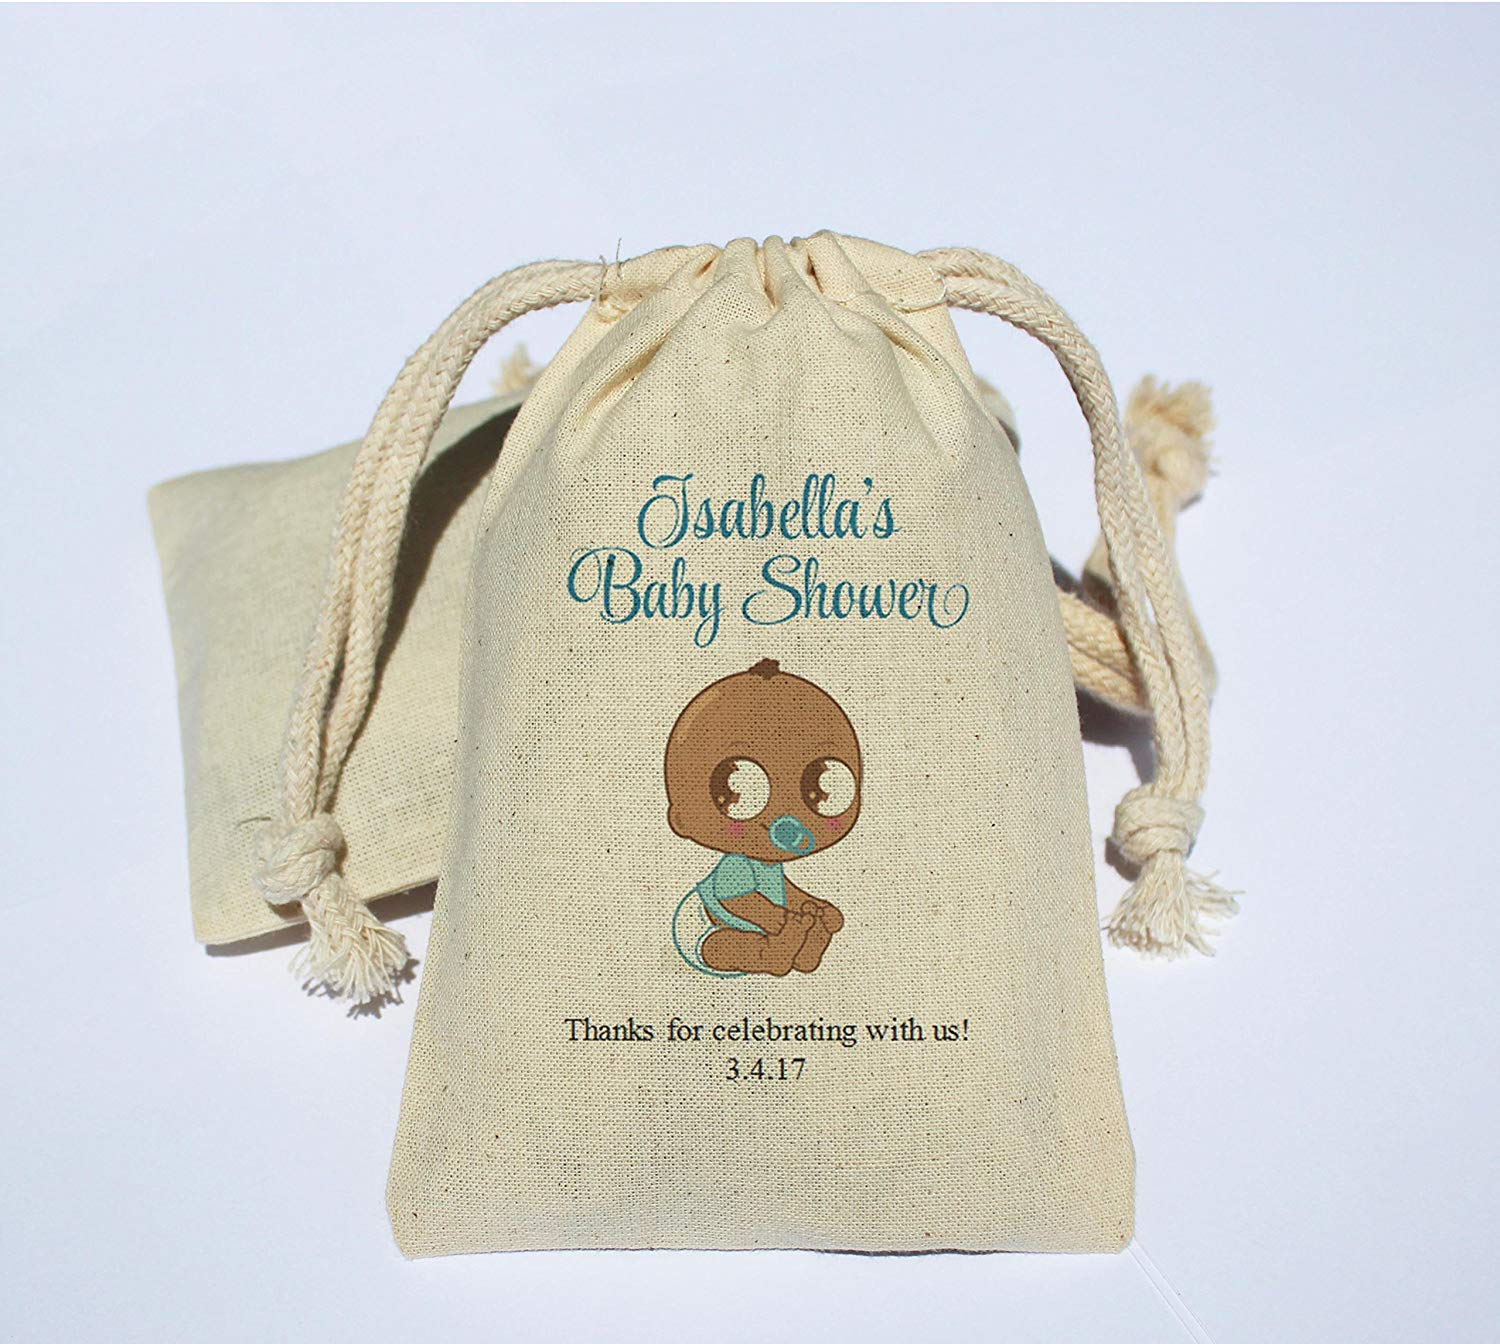 Personalized Cotton Muslin Baby Shower Party Favor Bag - Baby Shower Favor Bag - Baby Shower gift bag - Afro-American baby shower - African American baby shower